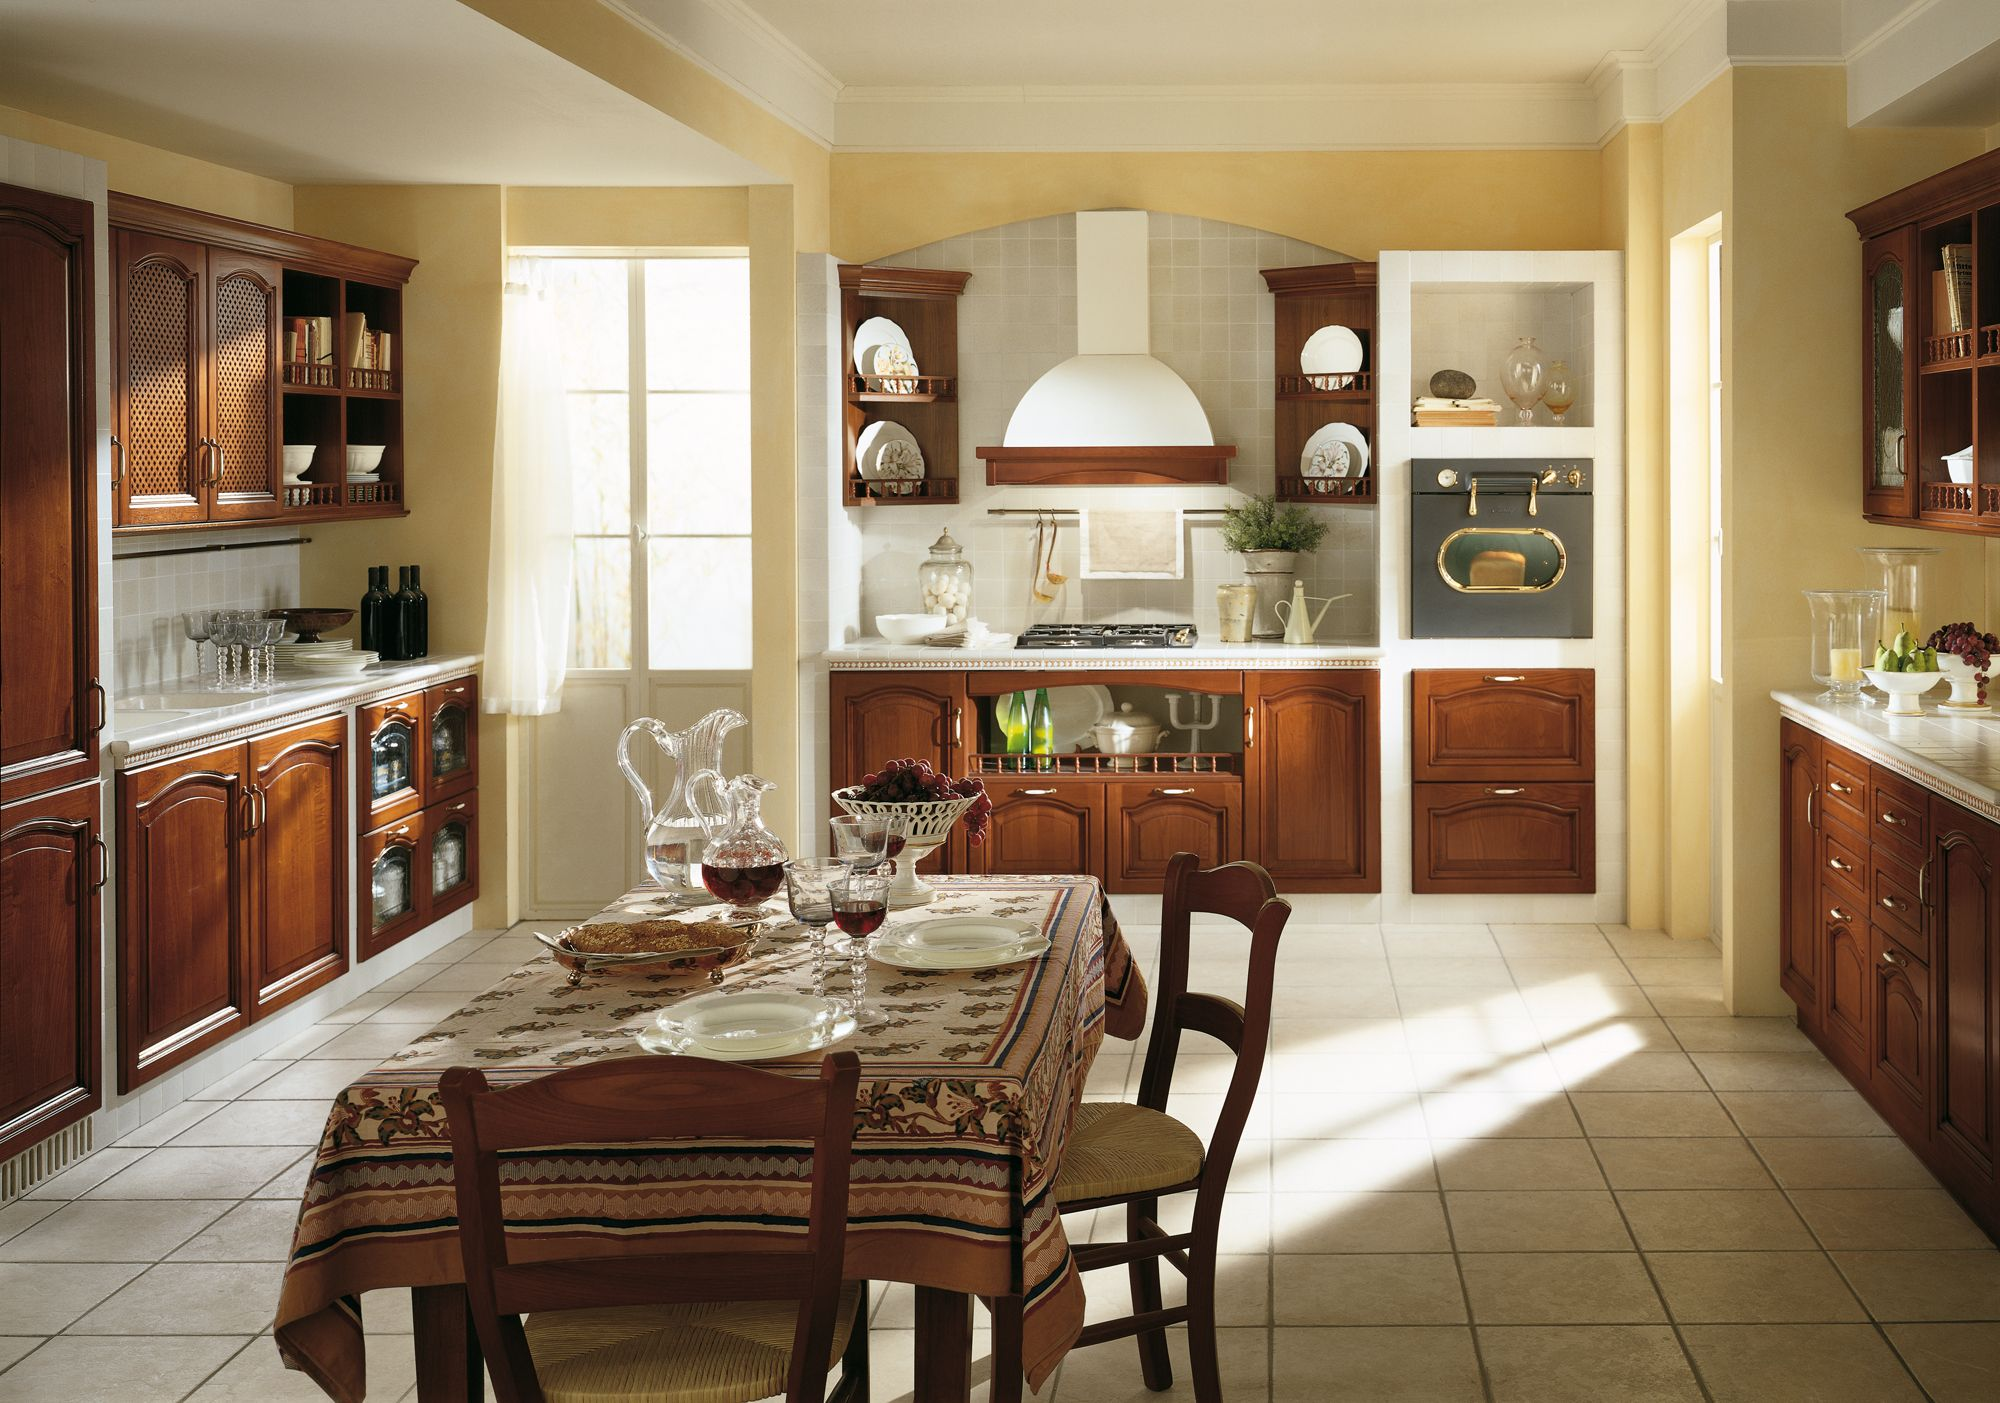 Margot by #Scavolini. Decorceramica is used for the larder unit, the ...